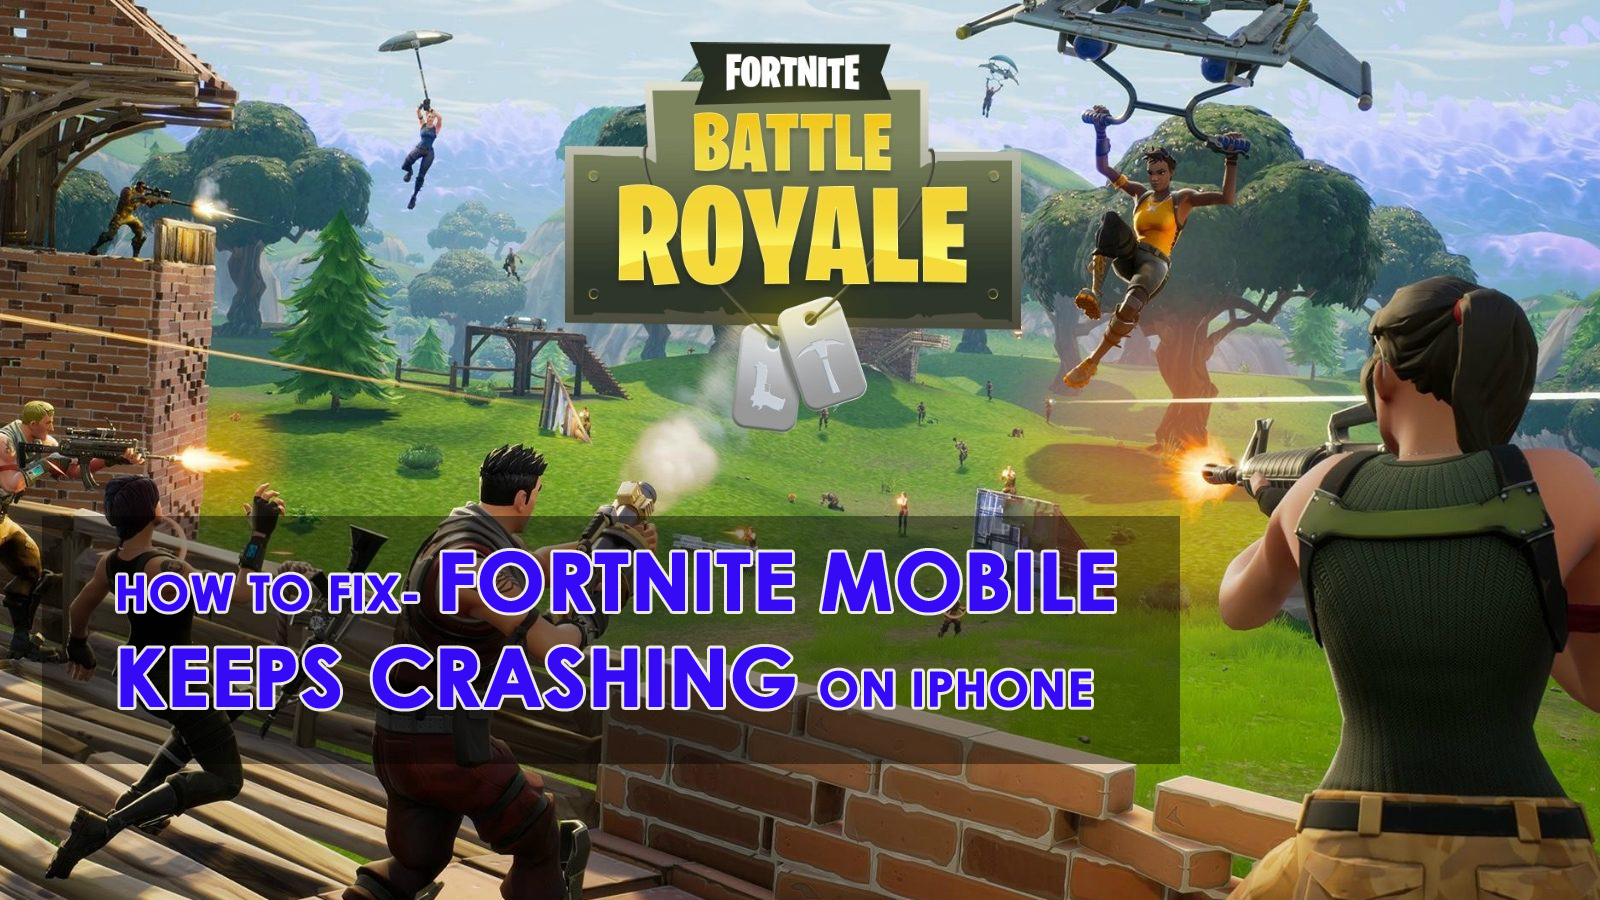 fortnite mobile keeps crashing on iphone xr xs xs max here is how to fix - problems with fortnite mobile